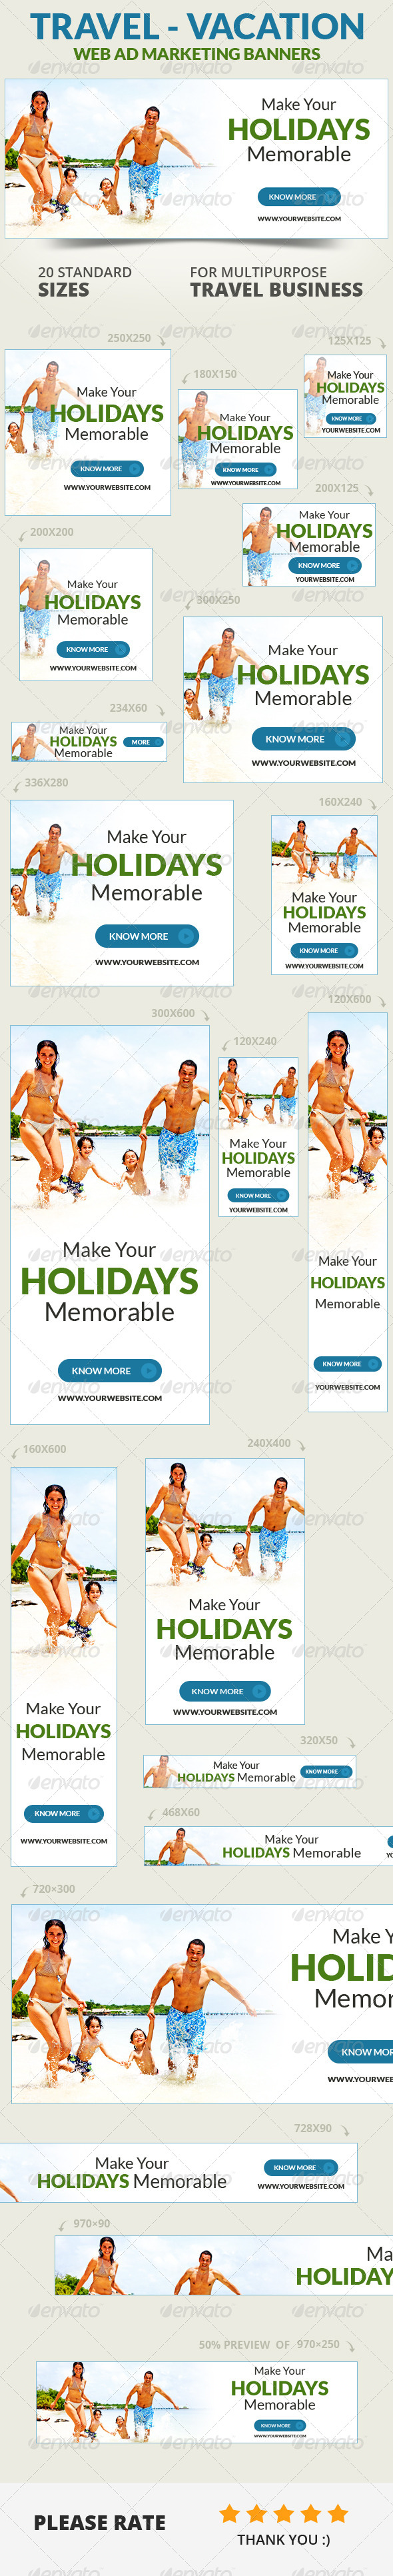 GraphicRiver Travel Vacation Web Ad Marketing Banners Vol 2 7002546